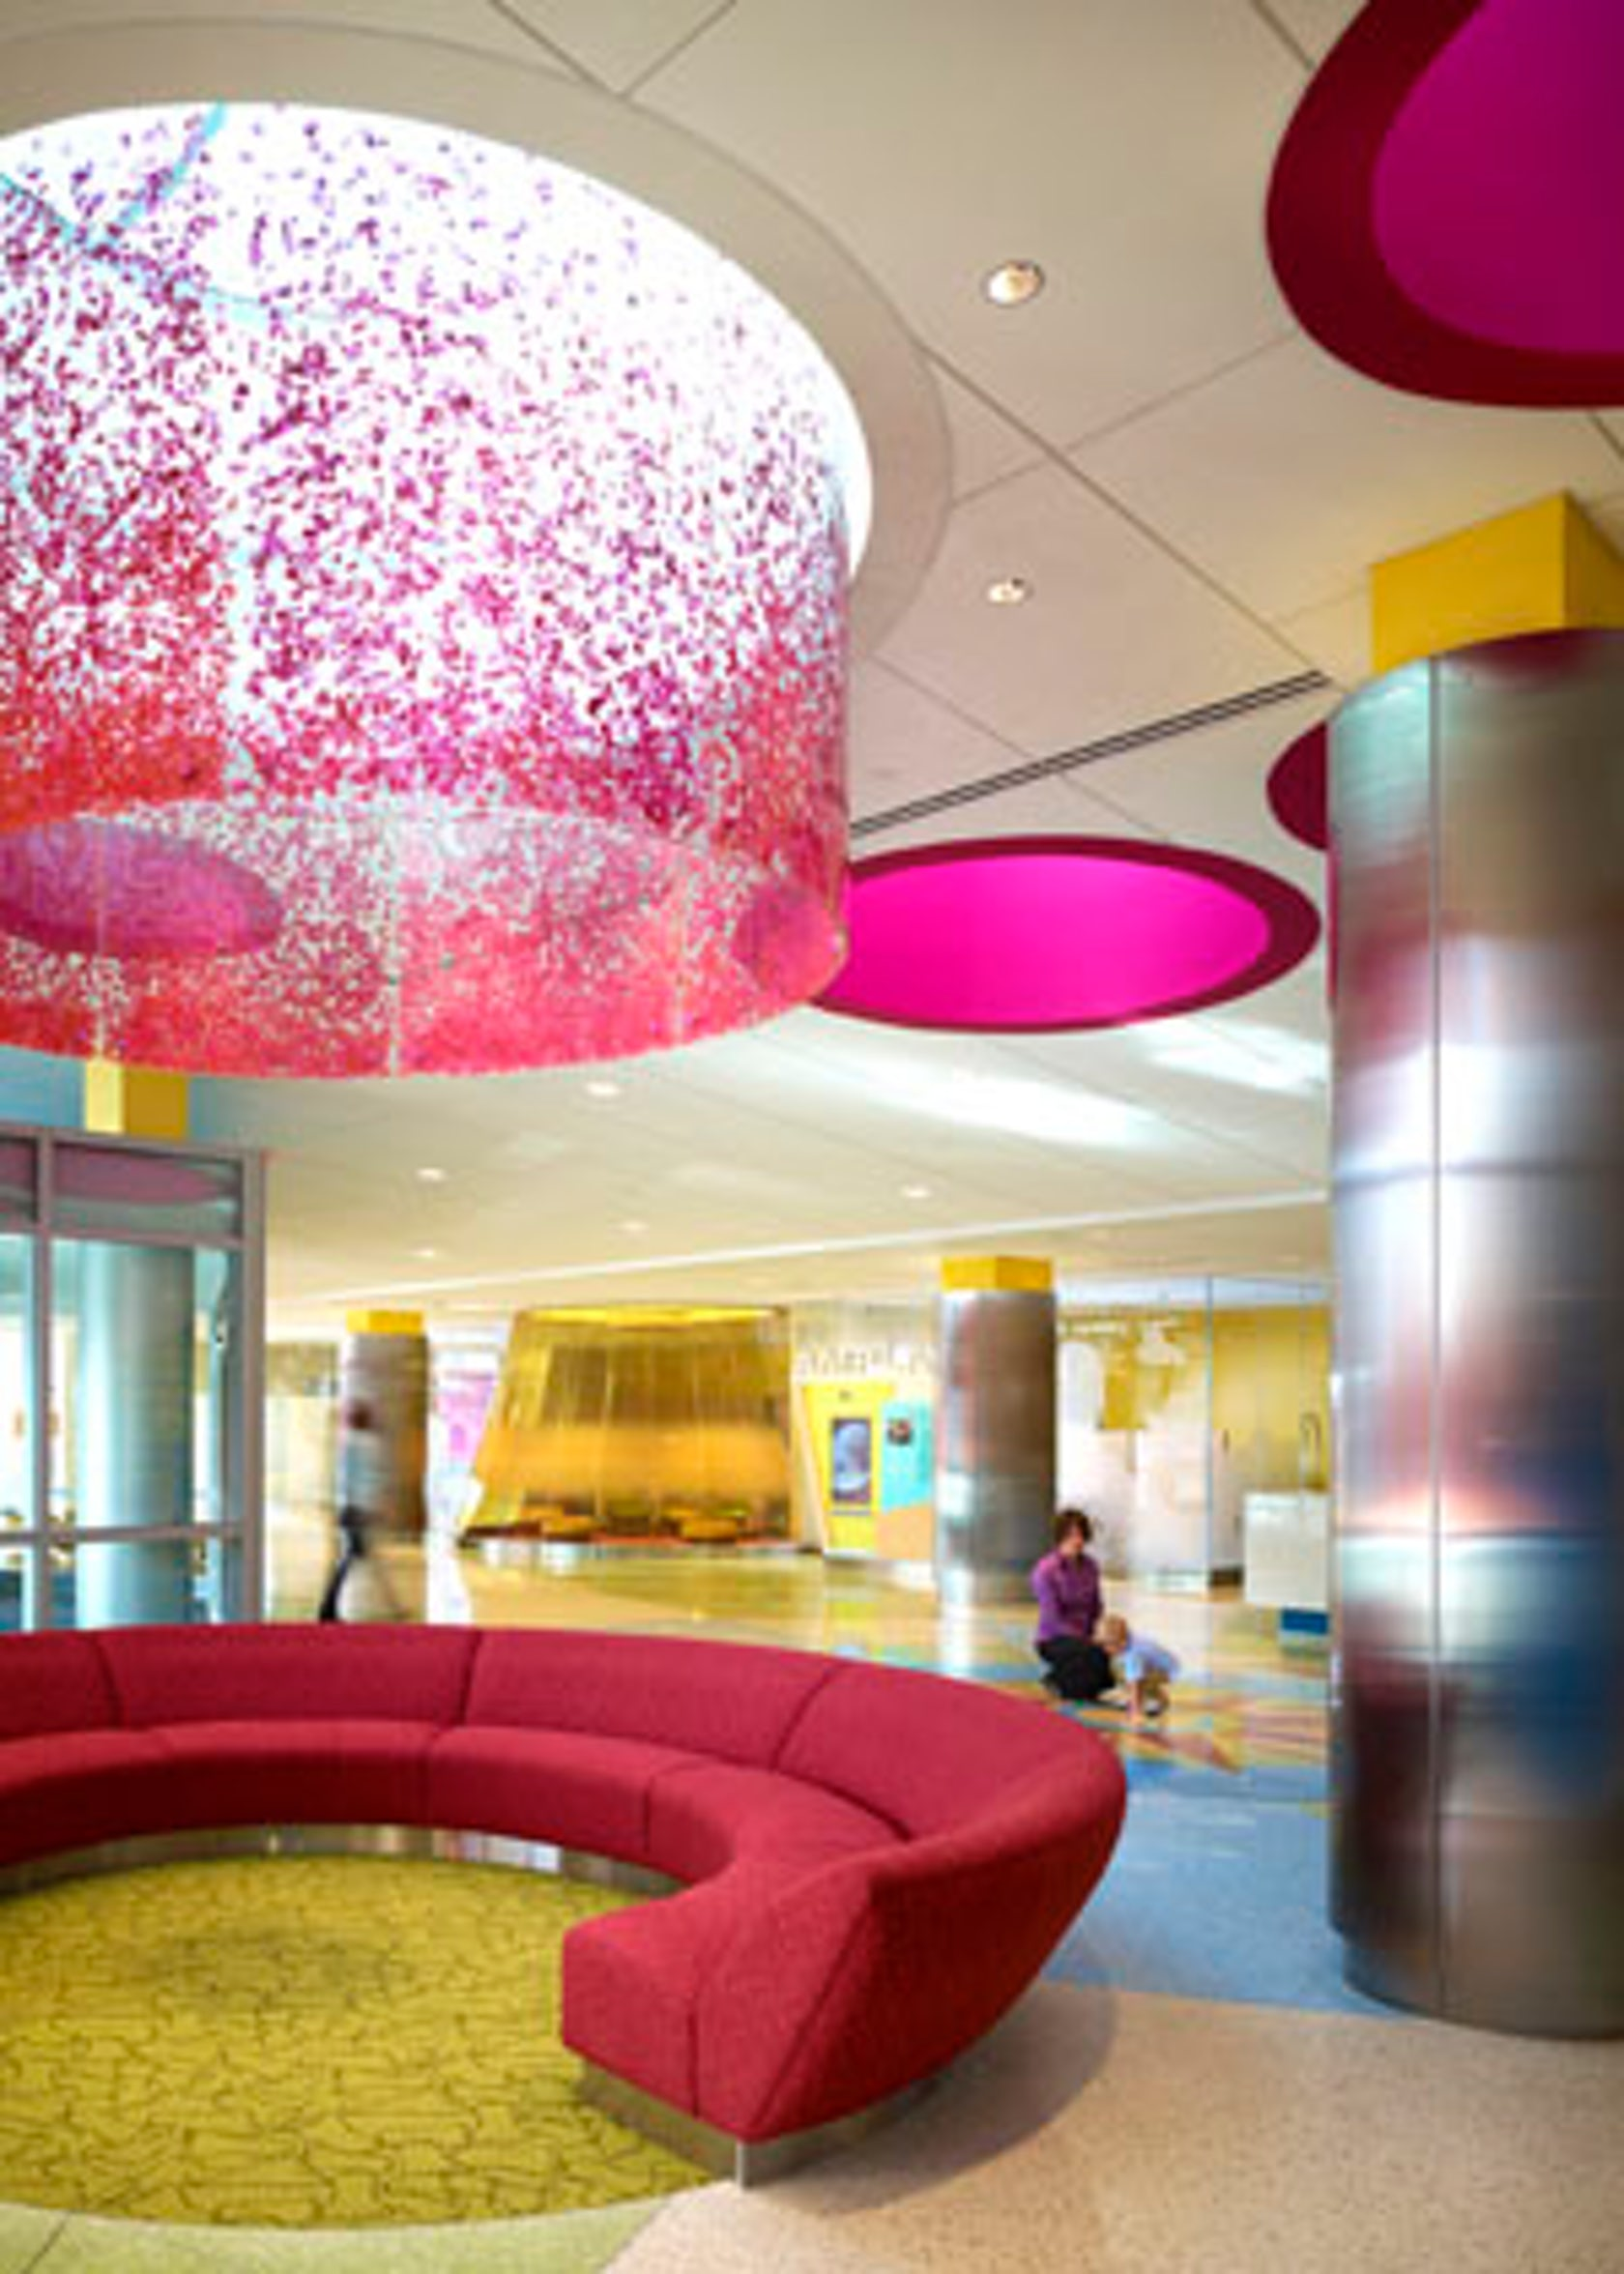 University Of Minnesota Amplatz Children S Hospital New